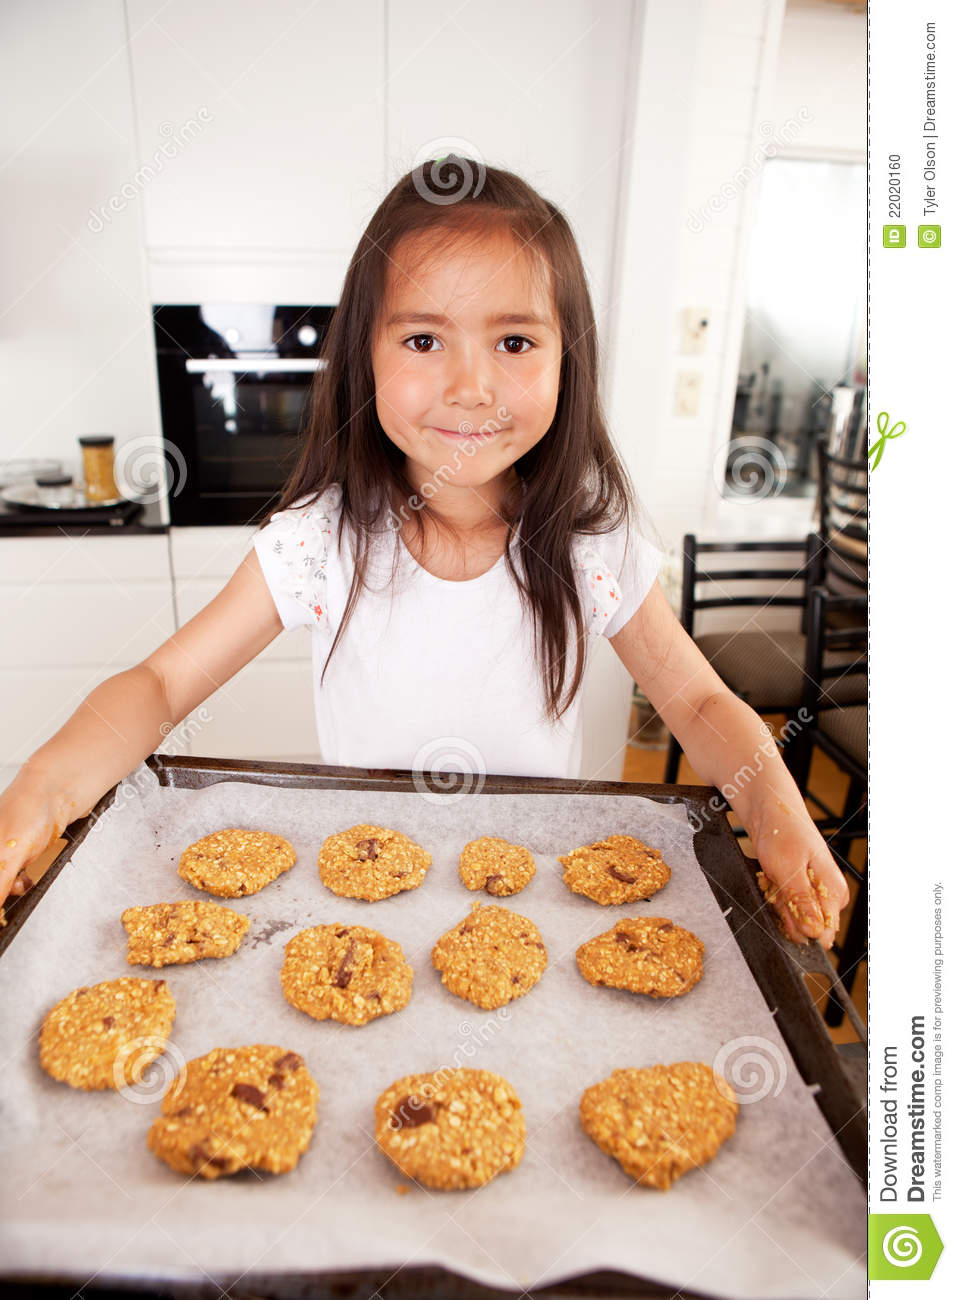 Cute Young Girl Baking Cookies Stock Photo Image 22020160